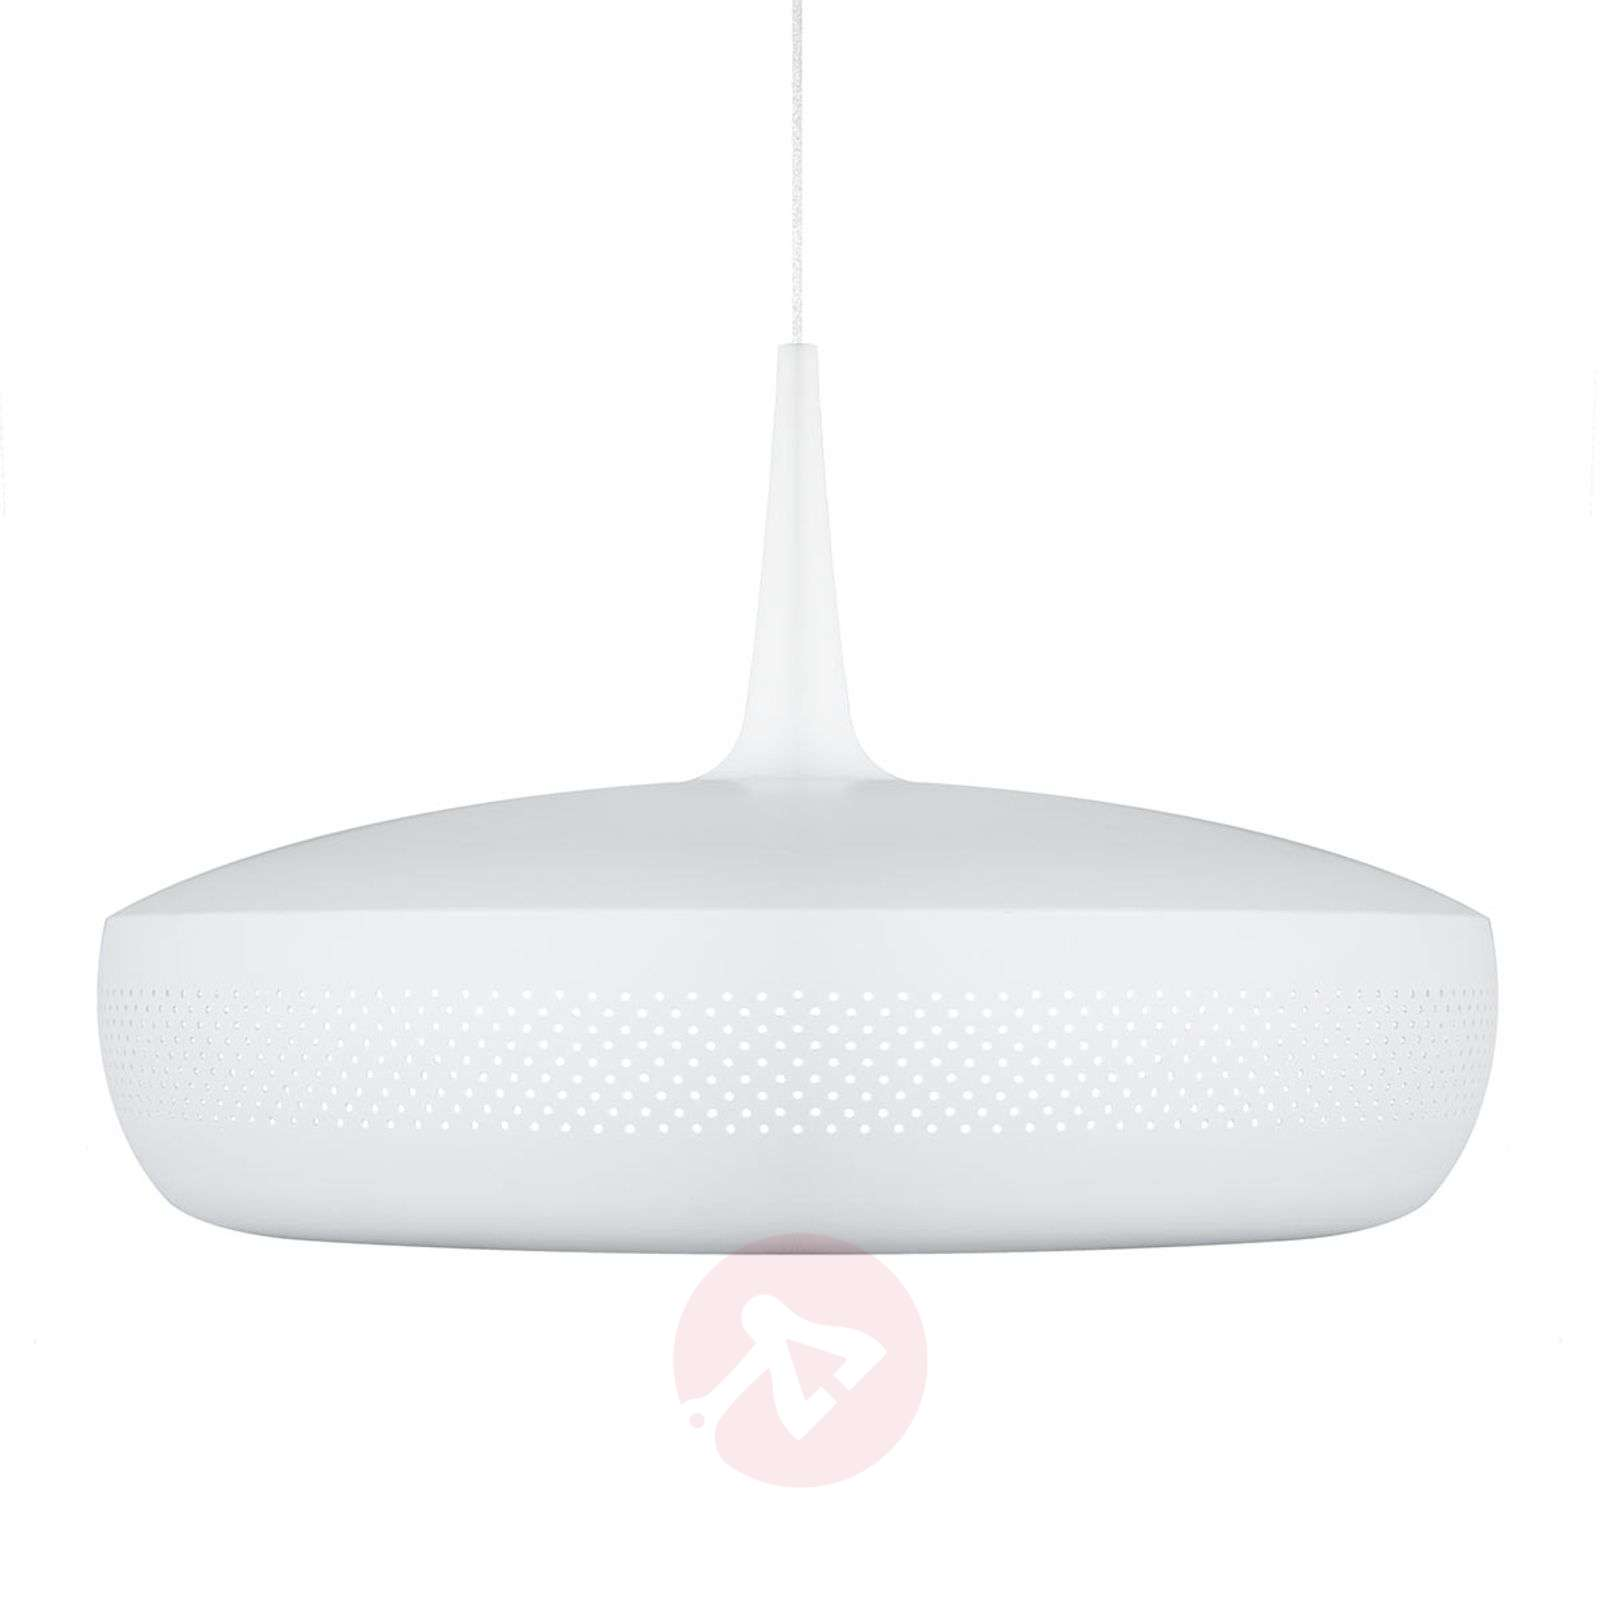 UMAGE Clava Dine hanging light in white-9521063-01